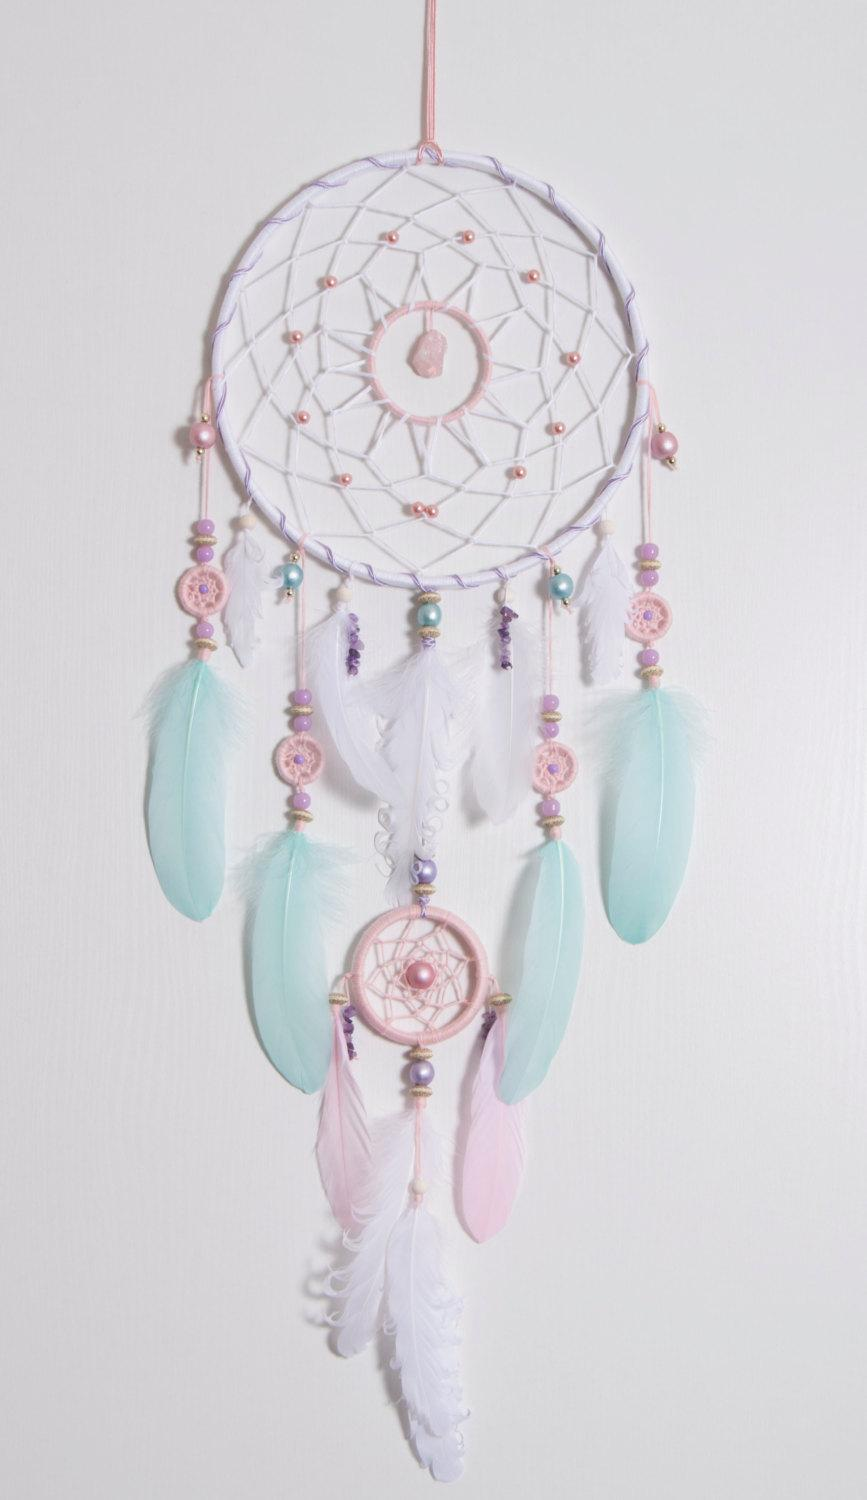 Large pink mint dream catcher bohemian dreamcatcher boho stale large pink mint dream catcher bohemian dreamcatcher boho stale dreamcatchers natural stone wall decor wedding decor wall hanging amipublicfo Gallery